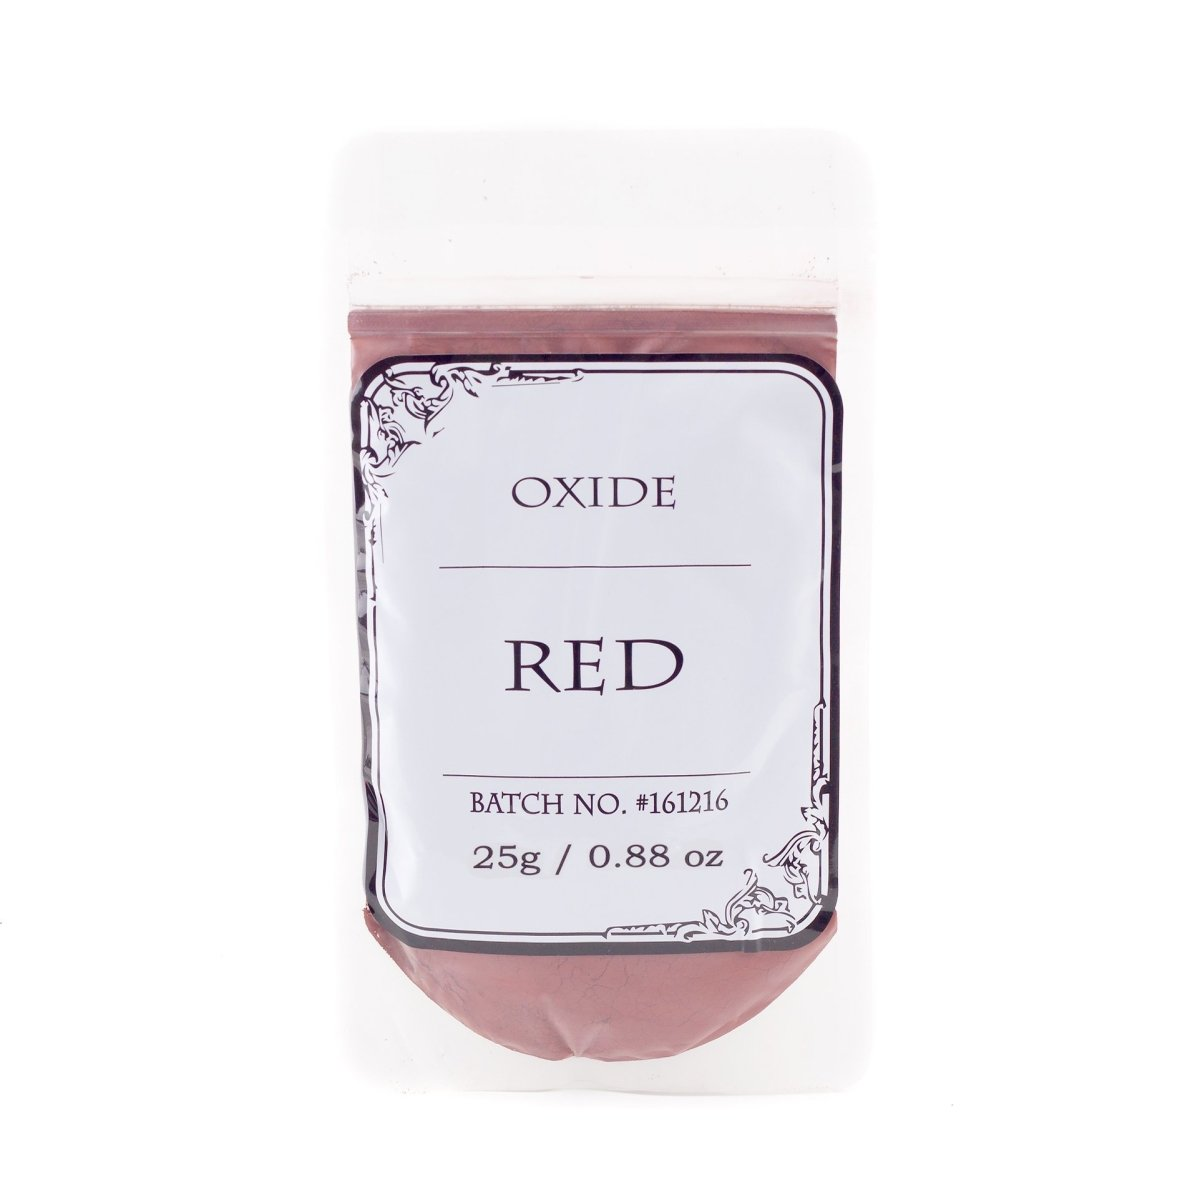 Red Oxide Mineral Powder - Mystic Moments UK